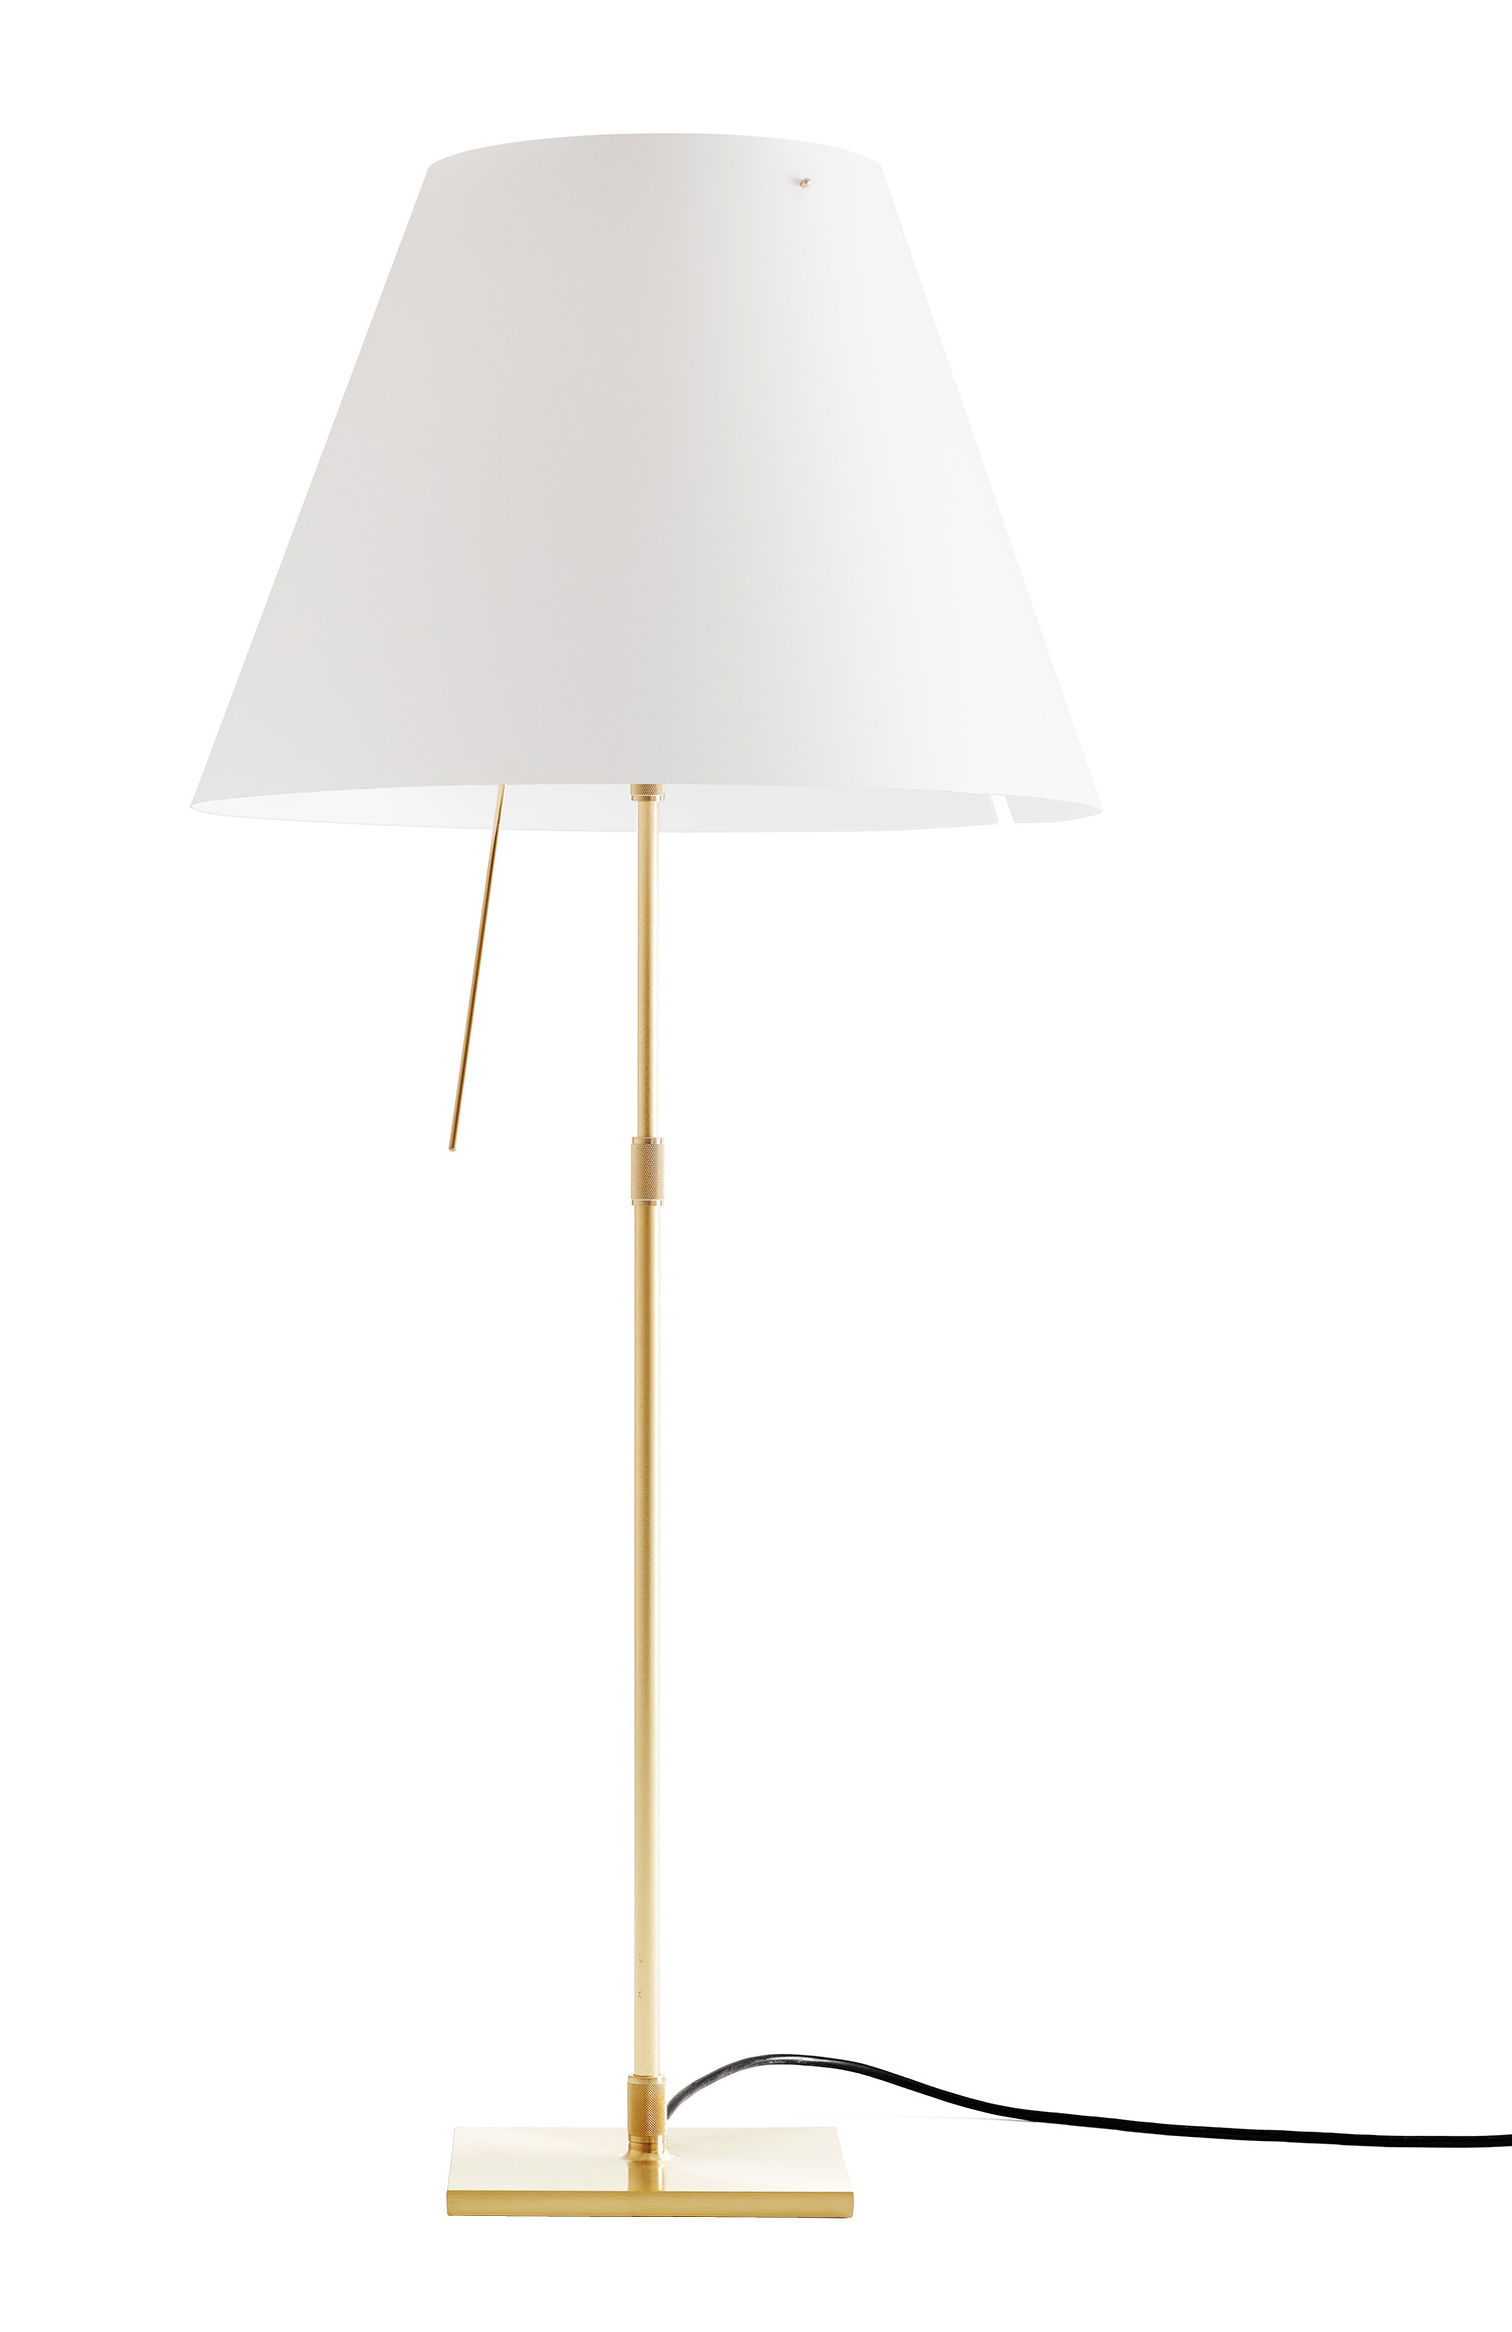 Luceplan Costanza Costanza Table Lamp H 76 To 110 Cm By Luceplan